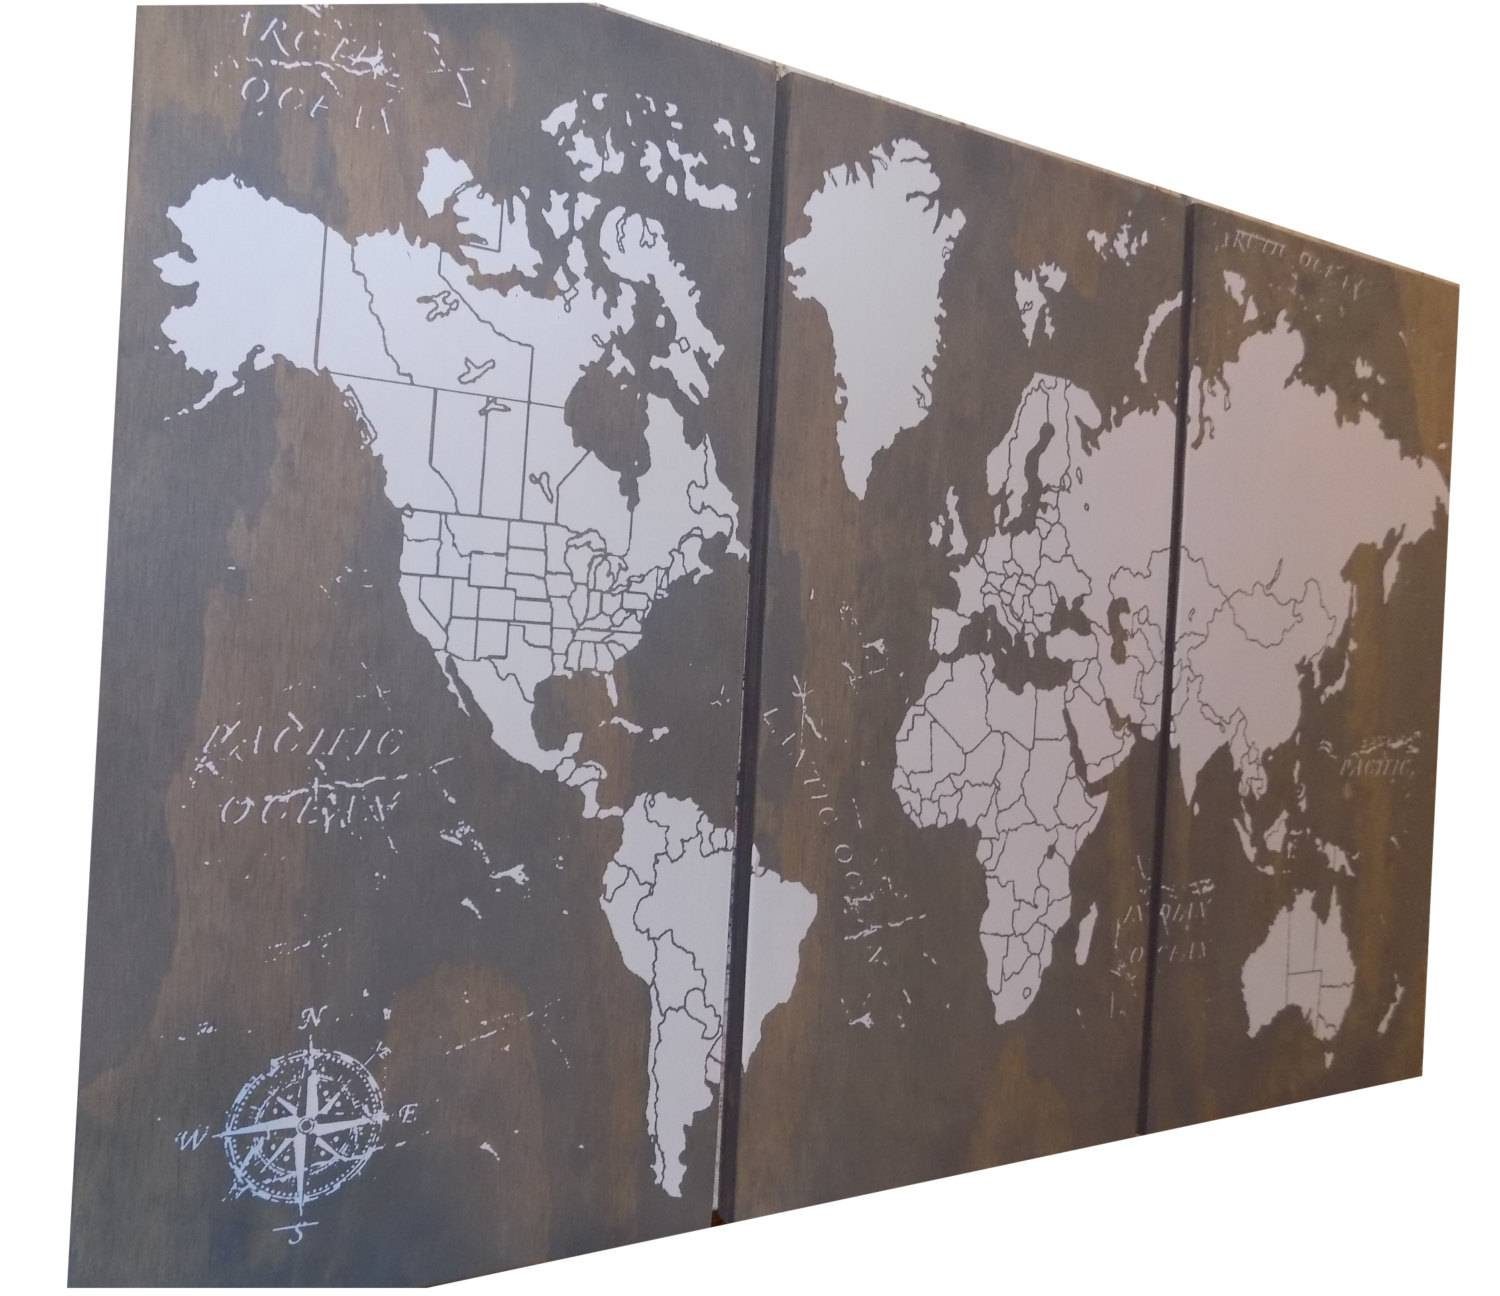 Extra Large World Push Pin Travel Map With Us Borders 3' Throughout 2018 Travel Map Wall Art (View 15 of 20)